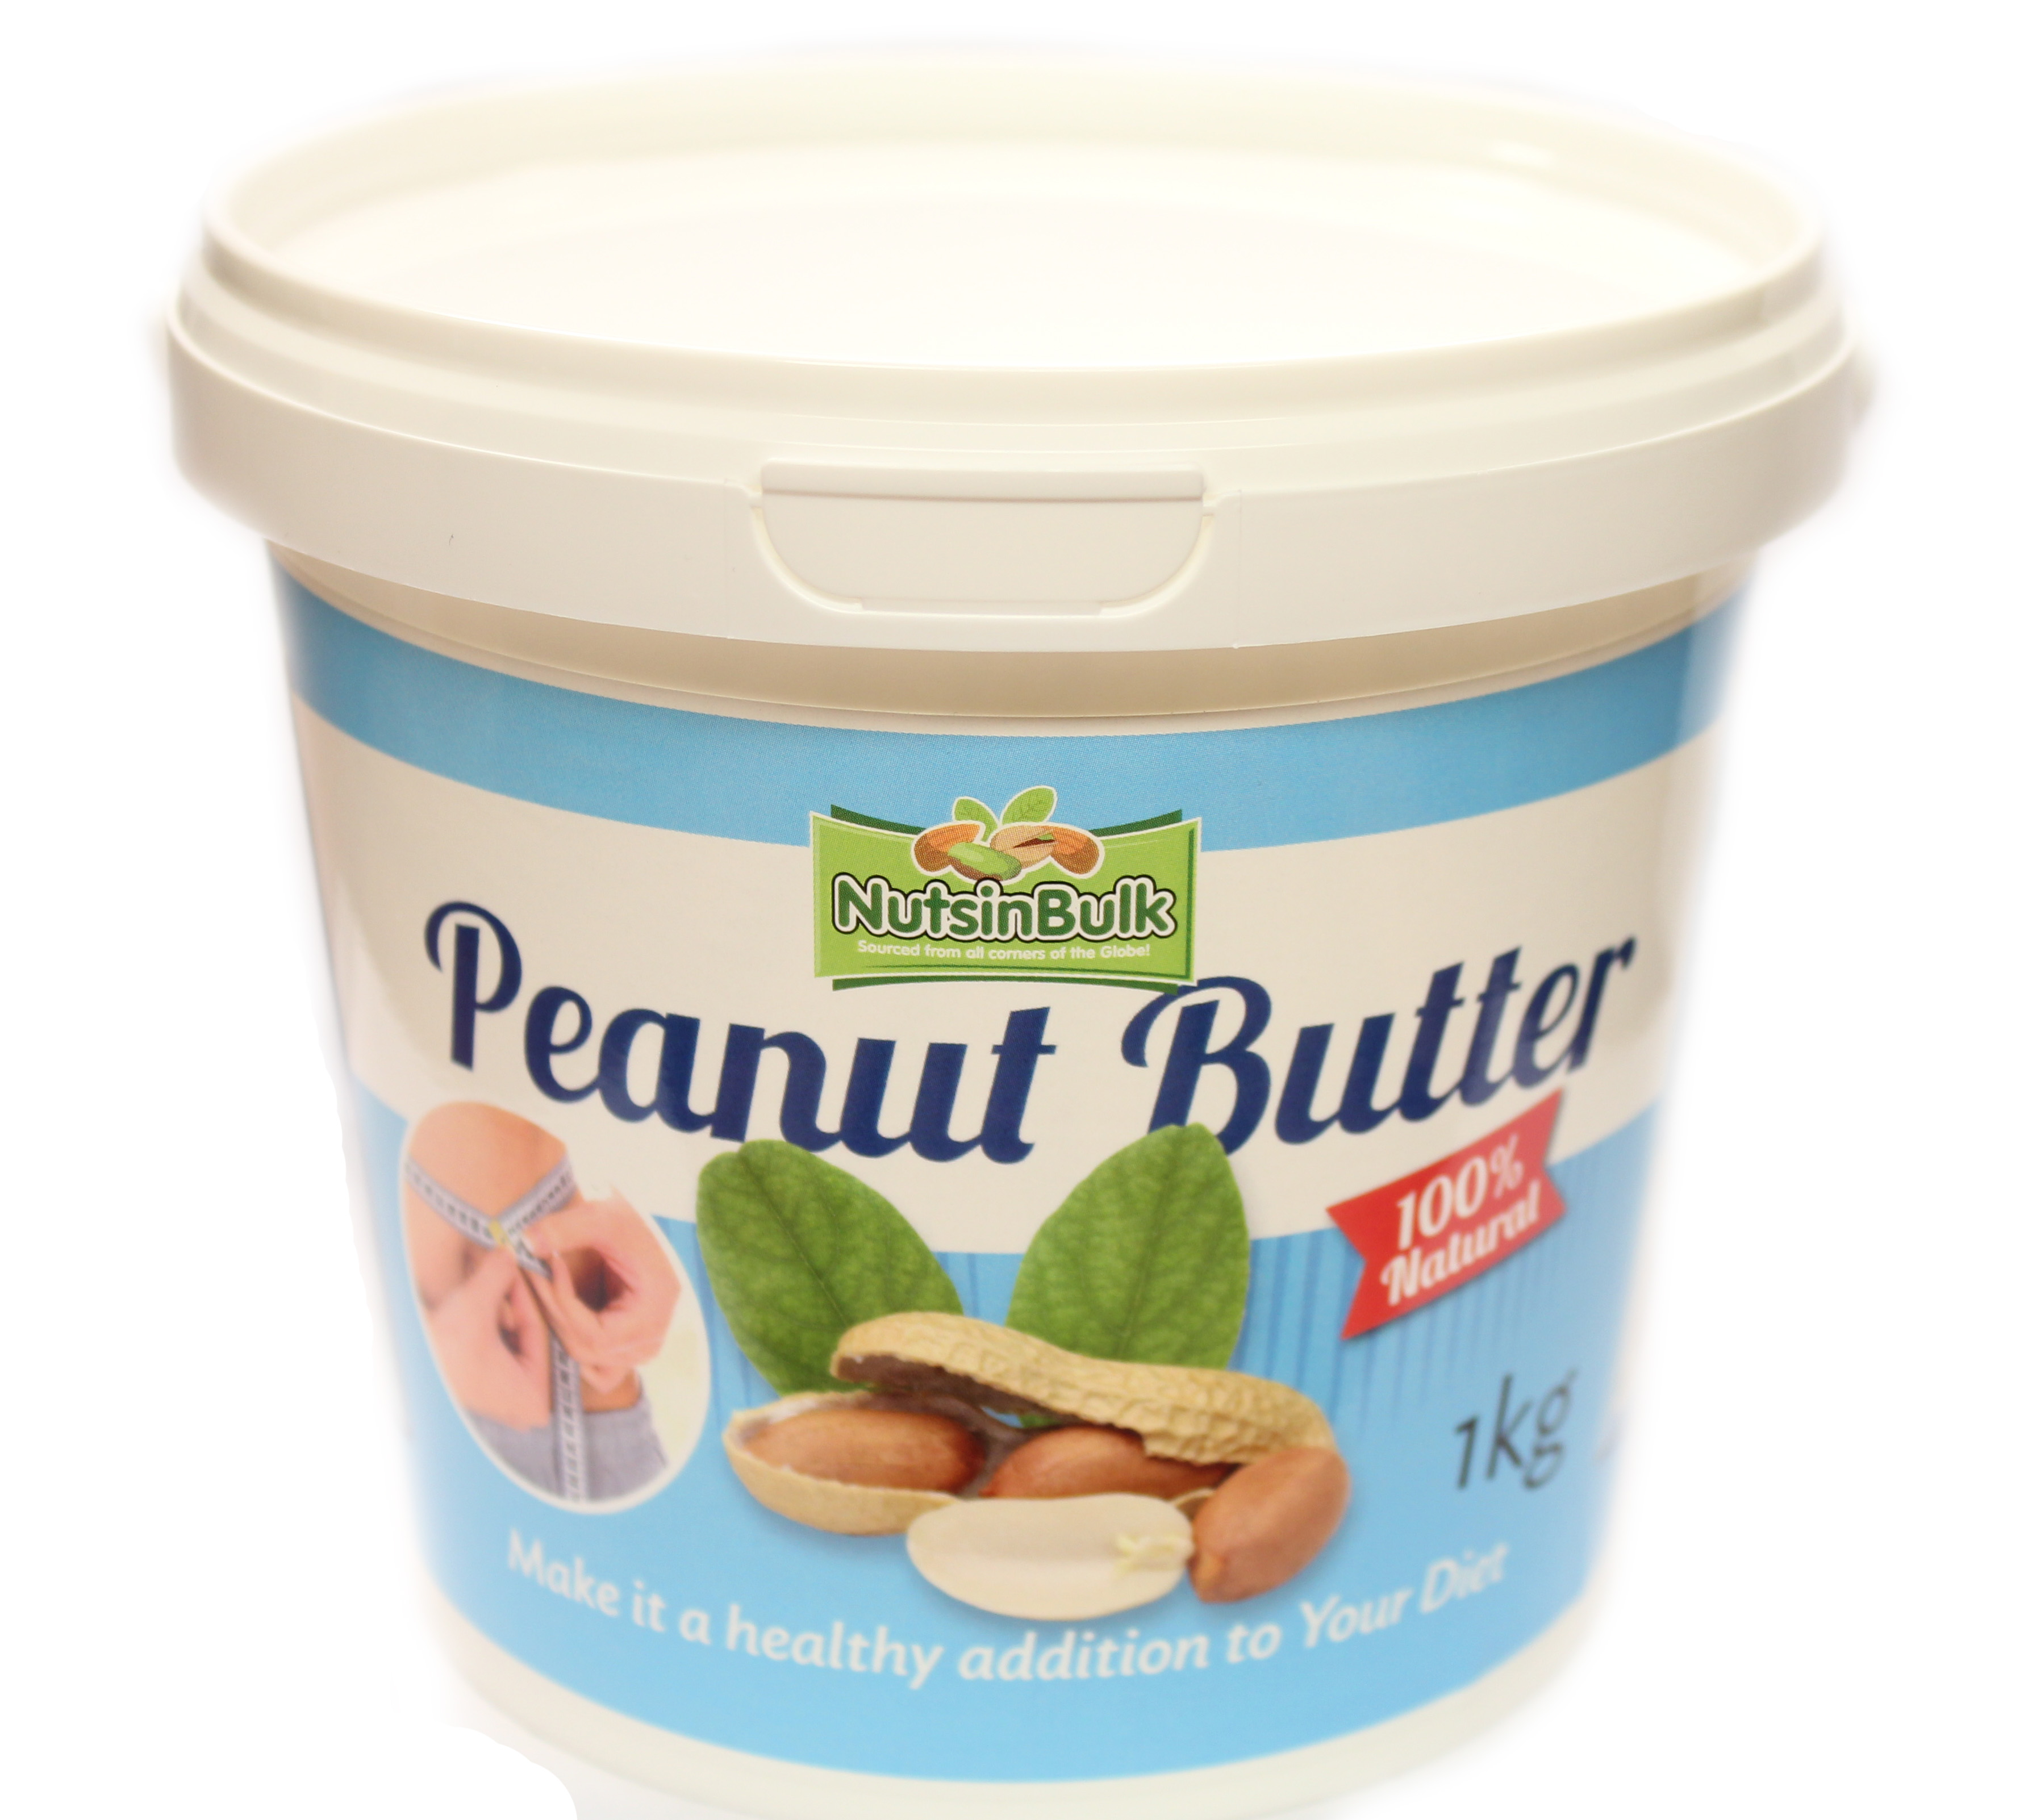 Nuts in Bulk Peanut Butter (100% Nuts)